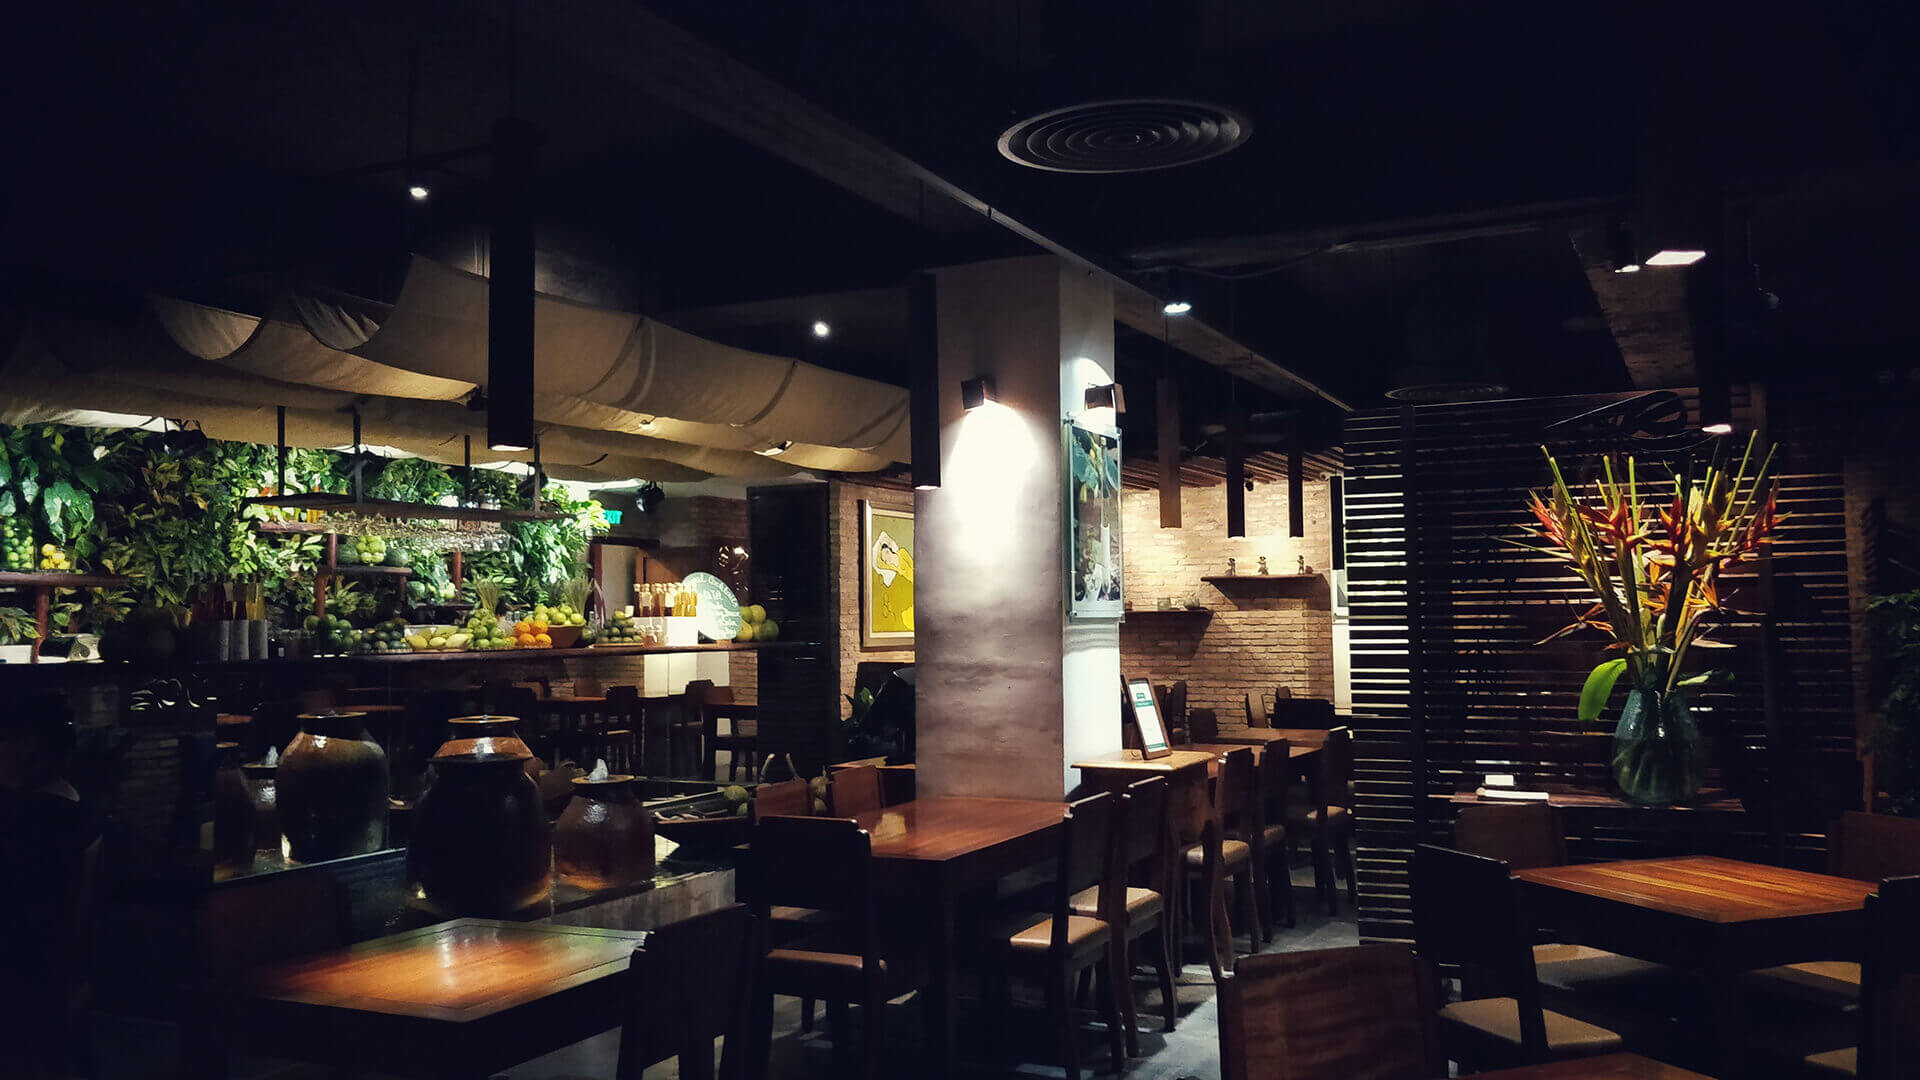 Picture of the inside of a restaurant with mood lightning and plant decor throughout. Represents restaurant insurance